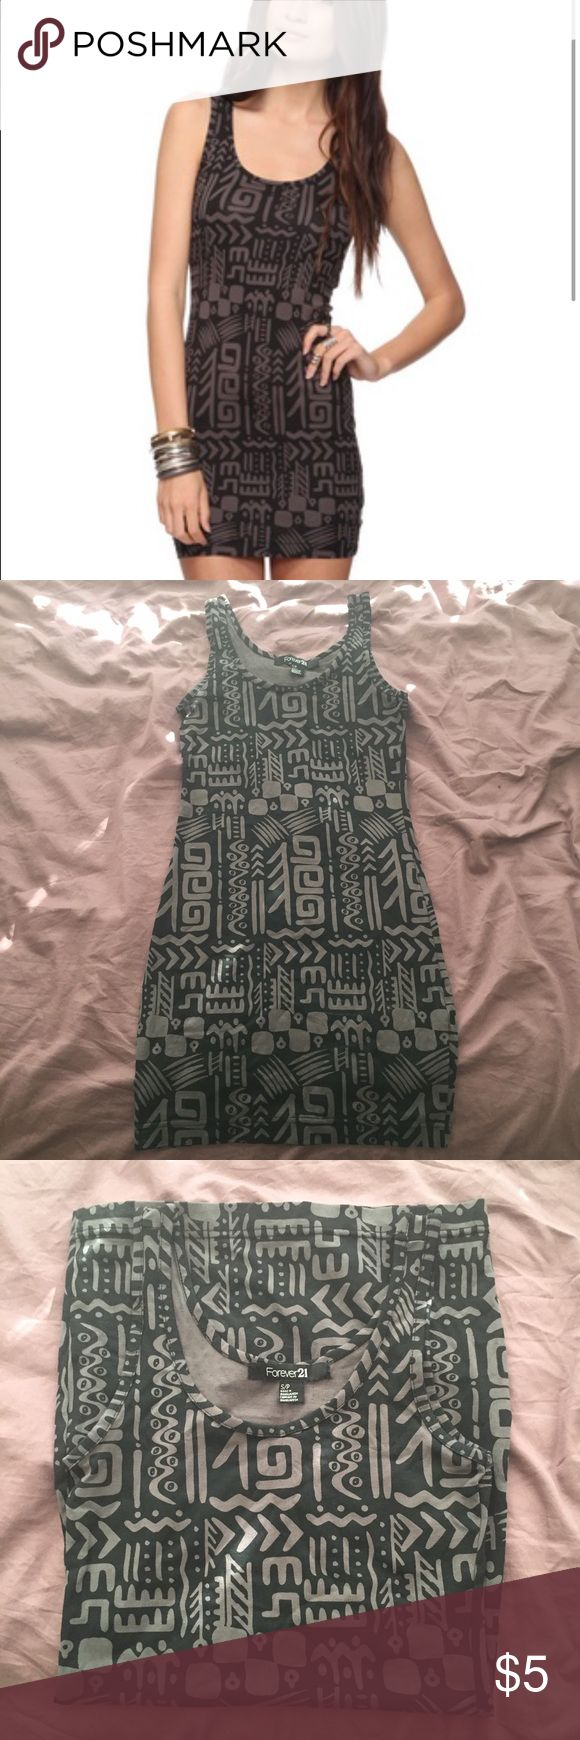 **FRIYAY SALE**Aztec Bodycon Dress Aztec Print Bodycon dress from Forever 21. Scoop neck, sleeveless and in excellent condition! Forever 21 Dresses Mini